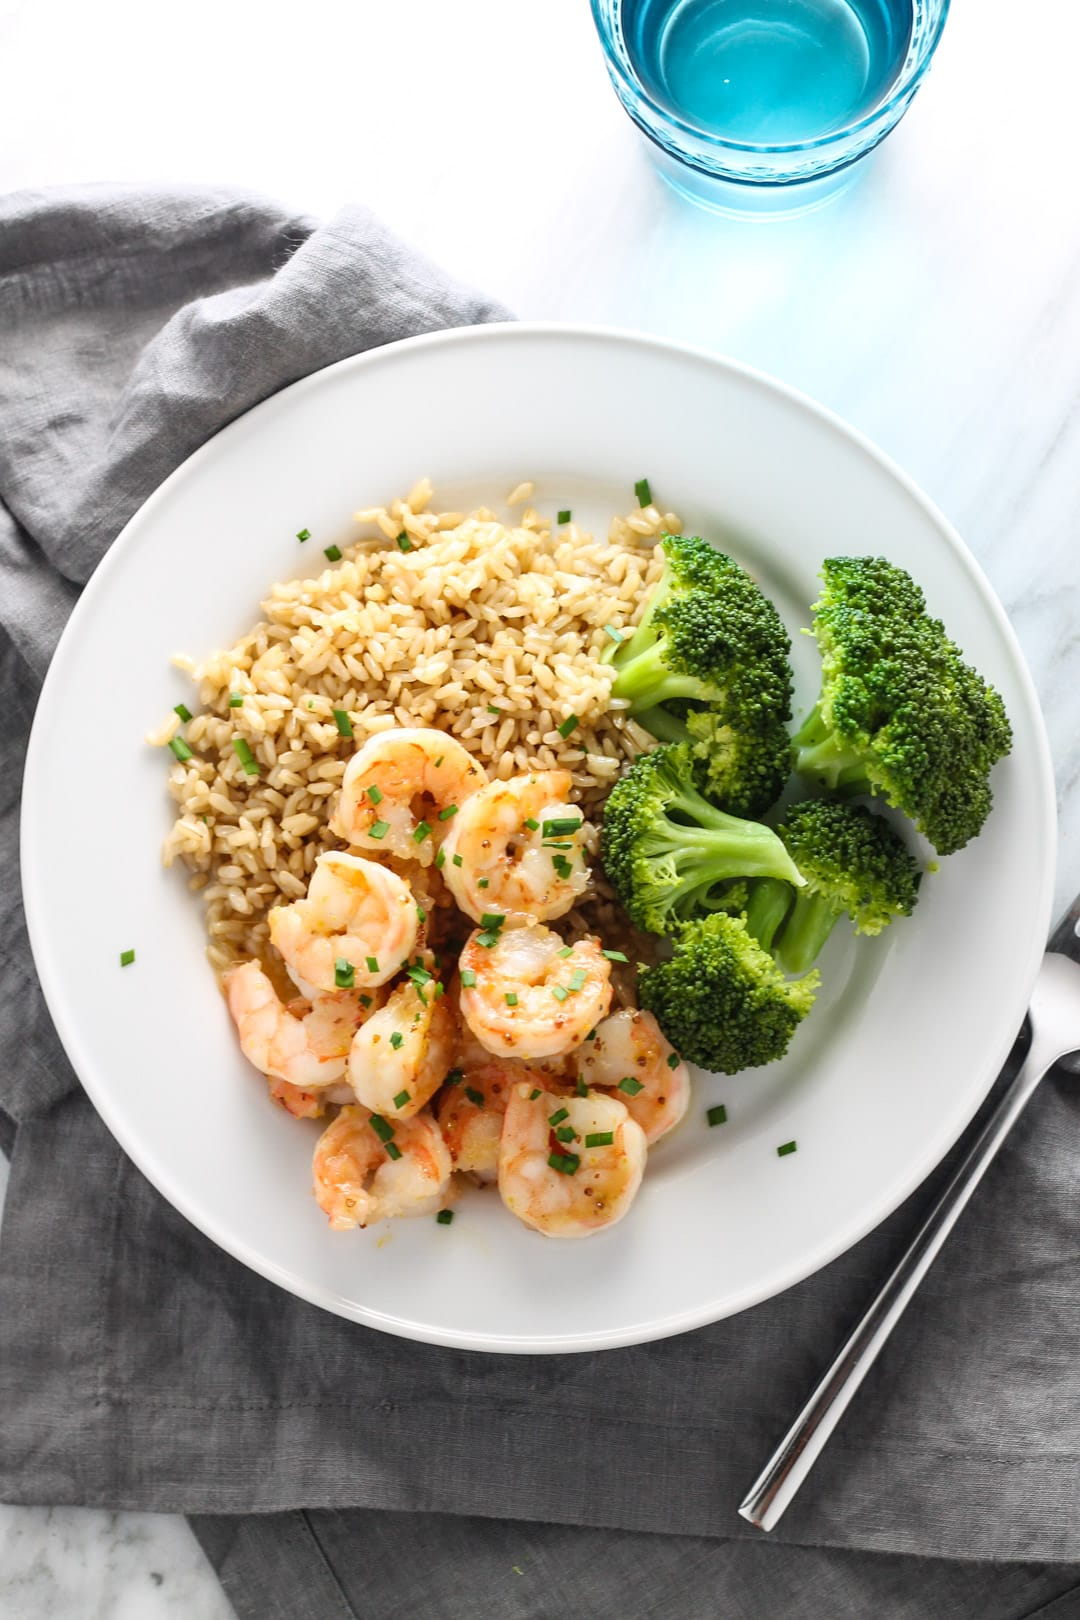 A plate with maple-dijon shrimp, steamed broccoli, and brown rice.